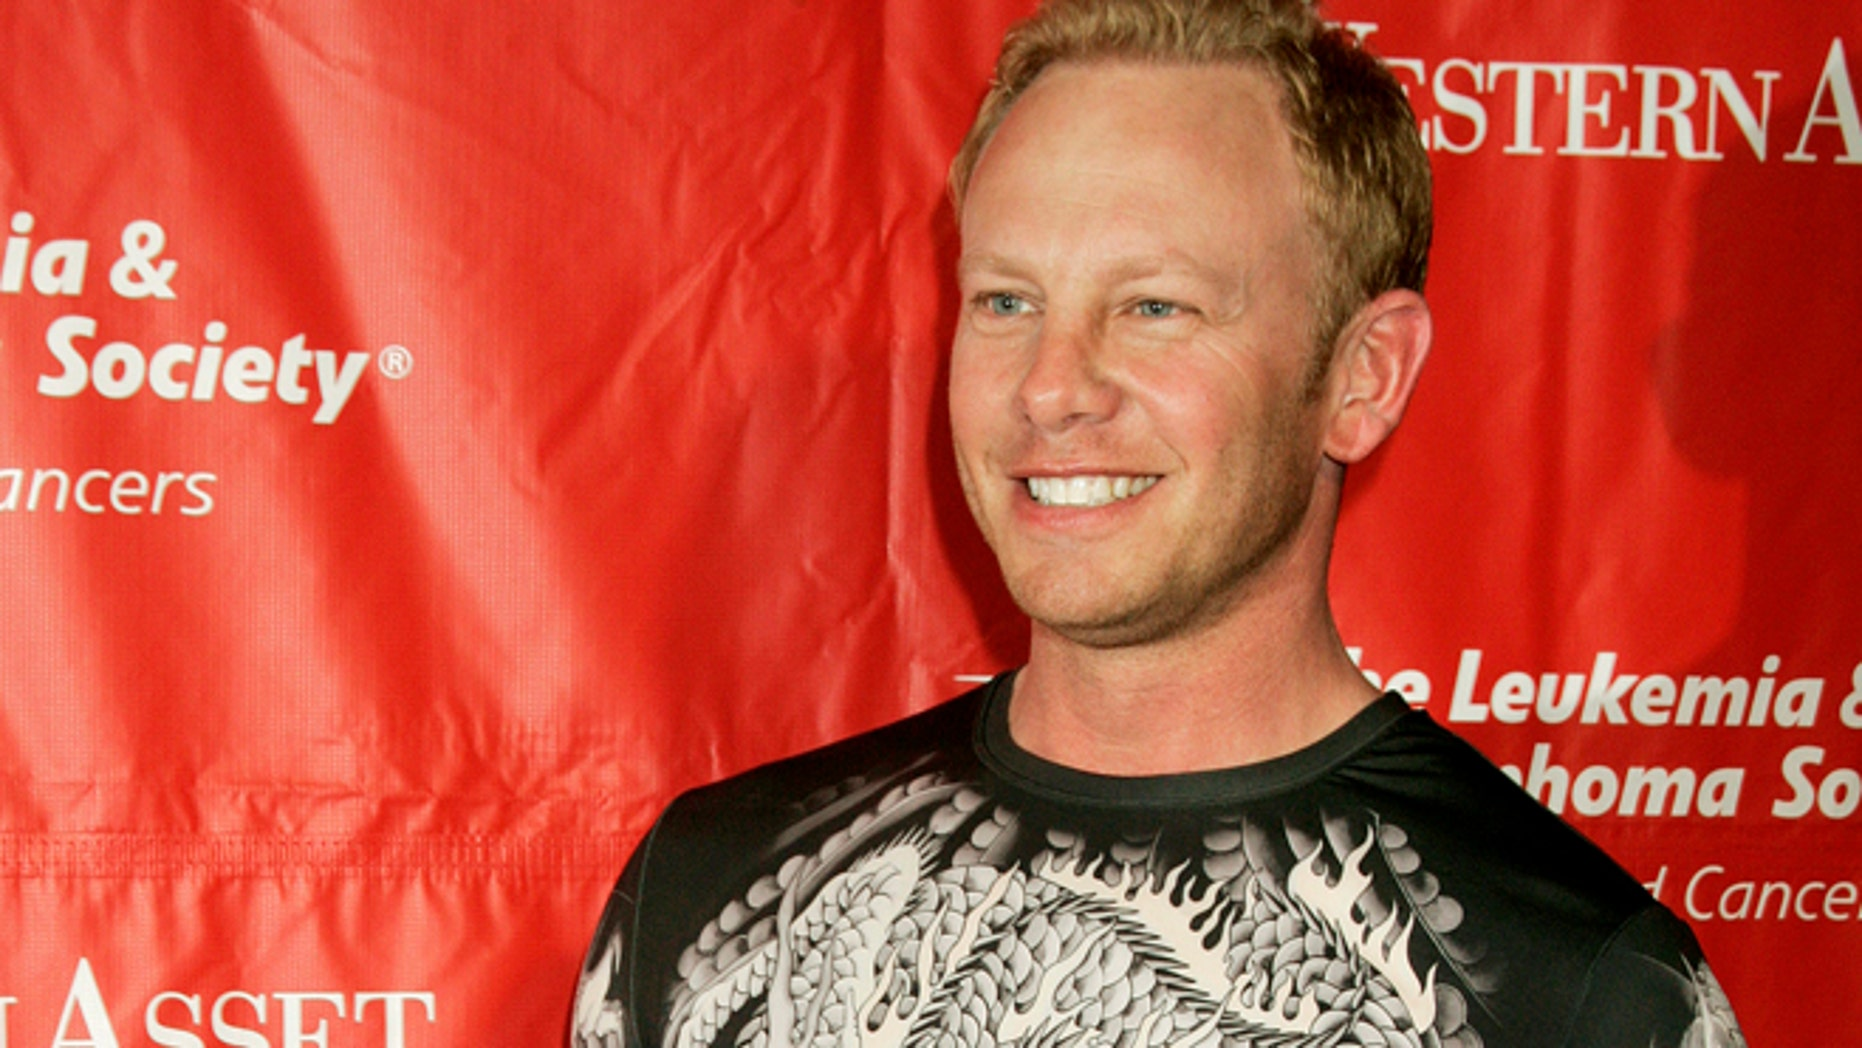 Actor Ian Ziering, who starred in the television series 'Beverly Hills 90210', arrives at the Leukemia and Lymphoma Society's second annual Celebrity Rock 'N Bowl fundraising event in Hollywood on April 6, 2006.